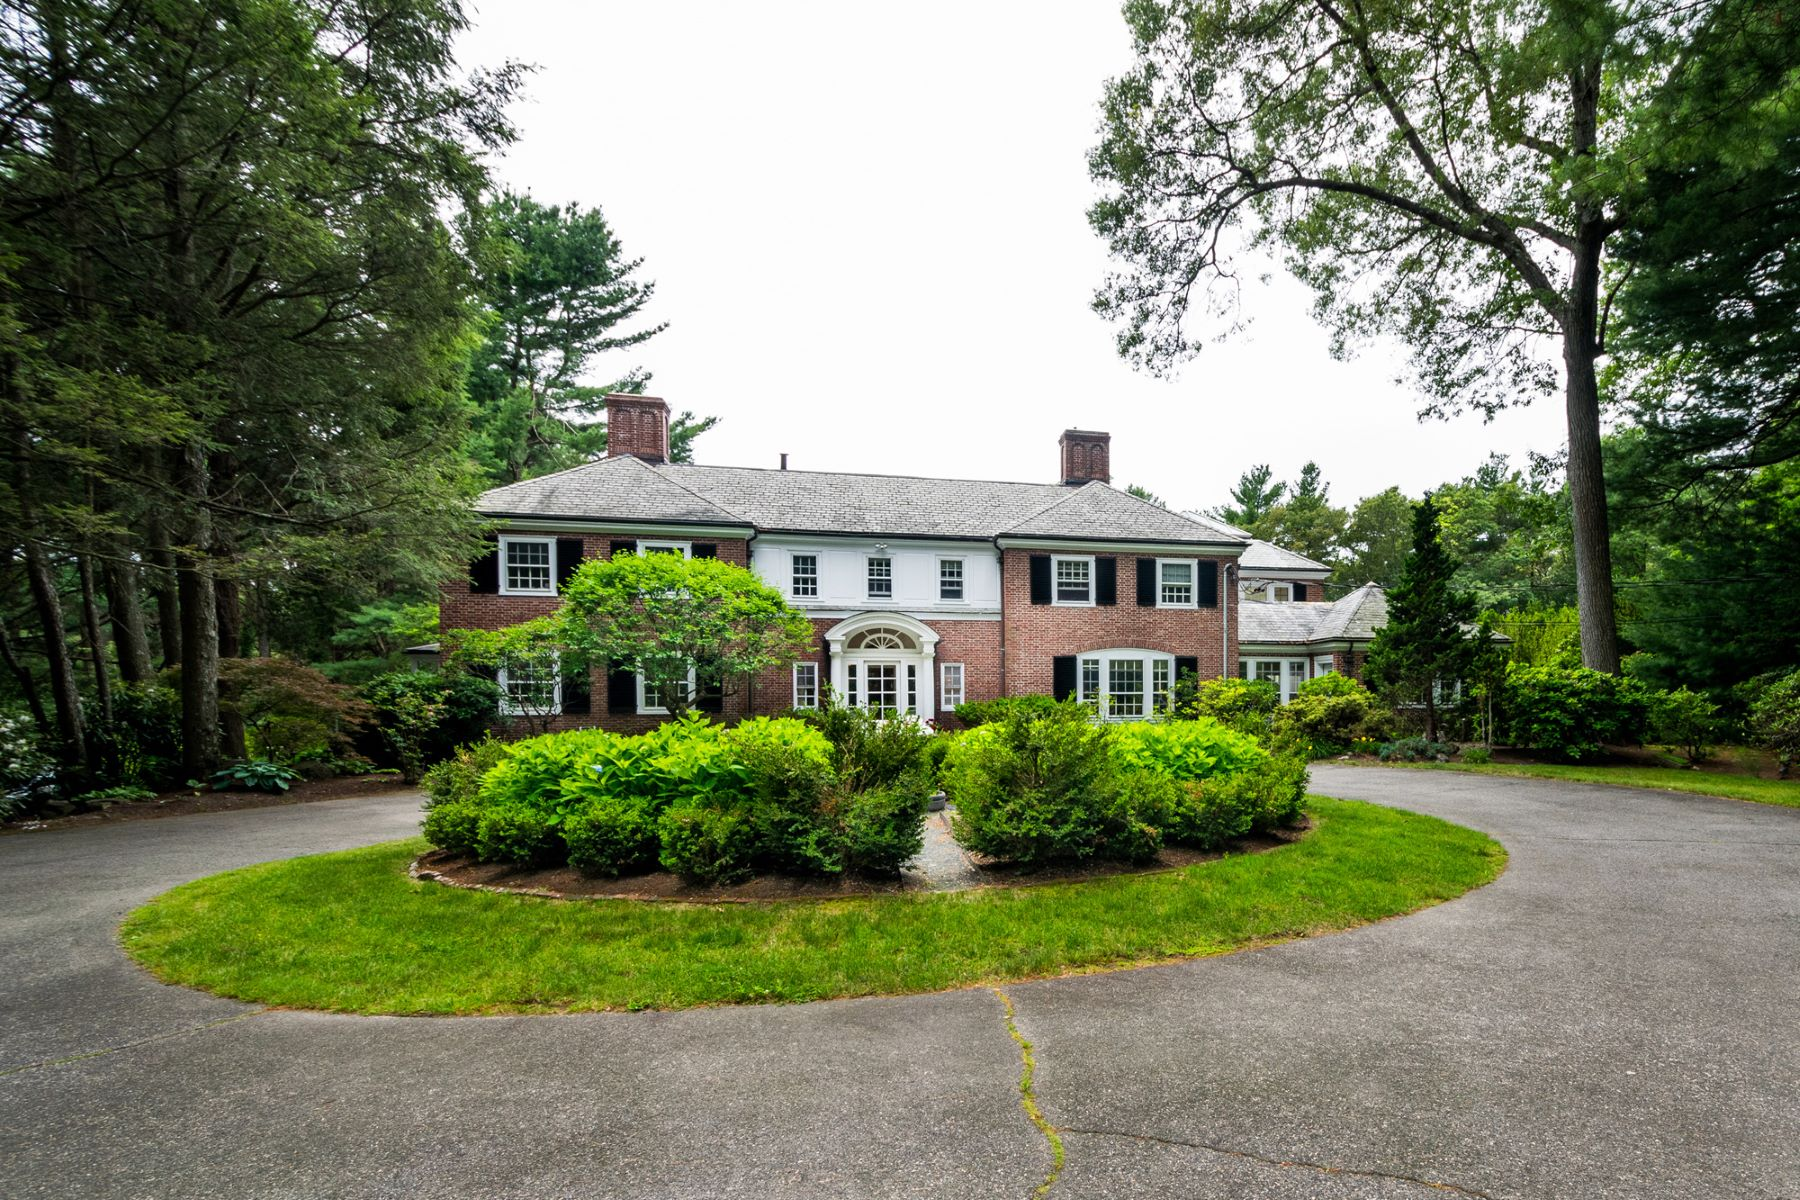 Additional photo for property listing at 244 Dudley Road, Newton 244 Dudley Rd Newton, Massachusetts 02459 United States